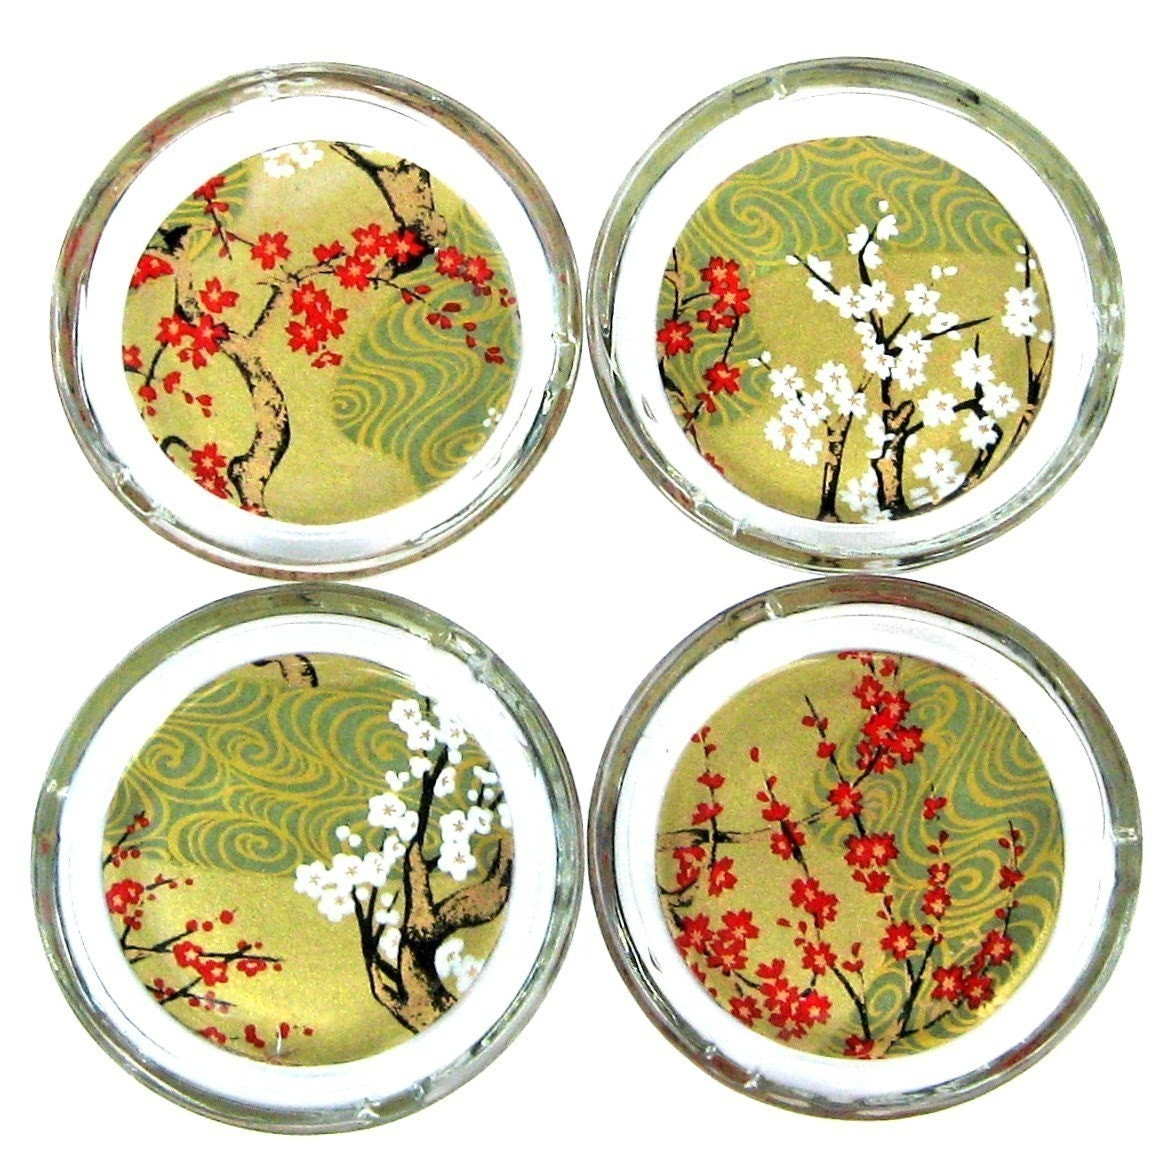 branching out - chiyogami and glass coasters/ ashtrays